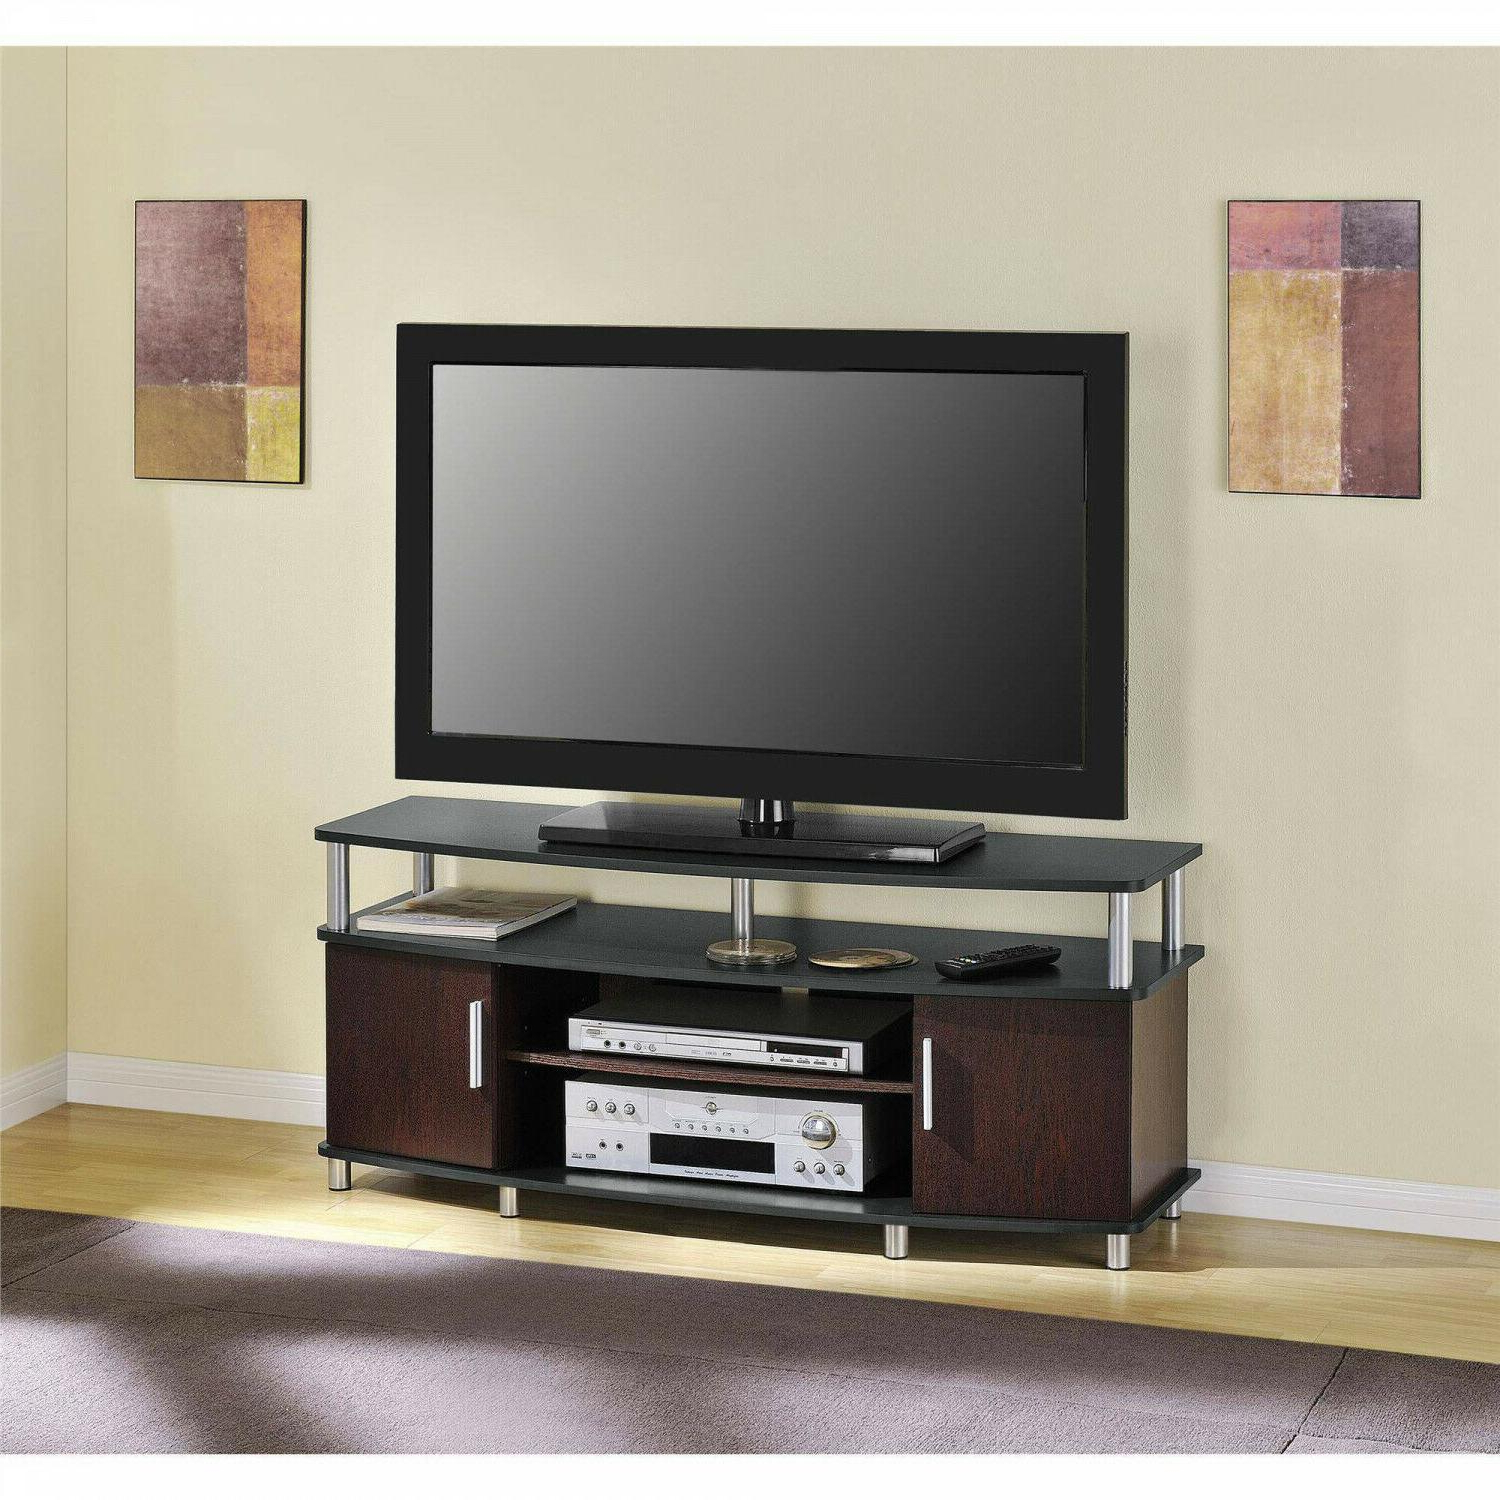 2018 Carson Tv Stands In Black And Cherry Regarding Ameriwood Home Carson Tv Stand Console Fits (View 5 of 10)